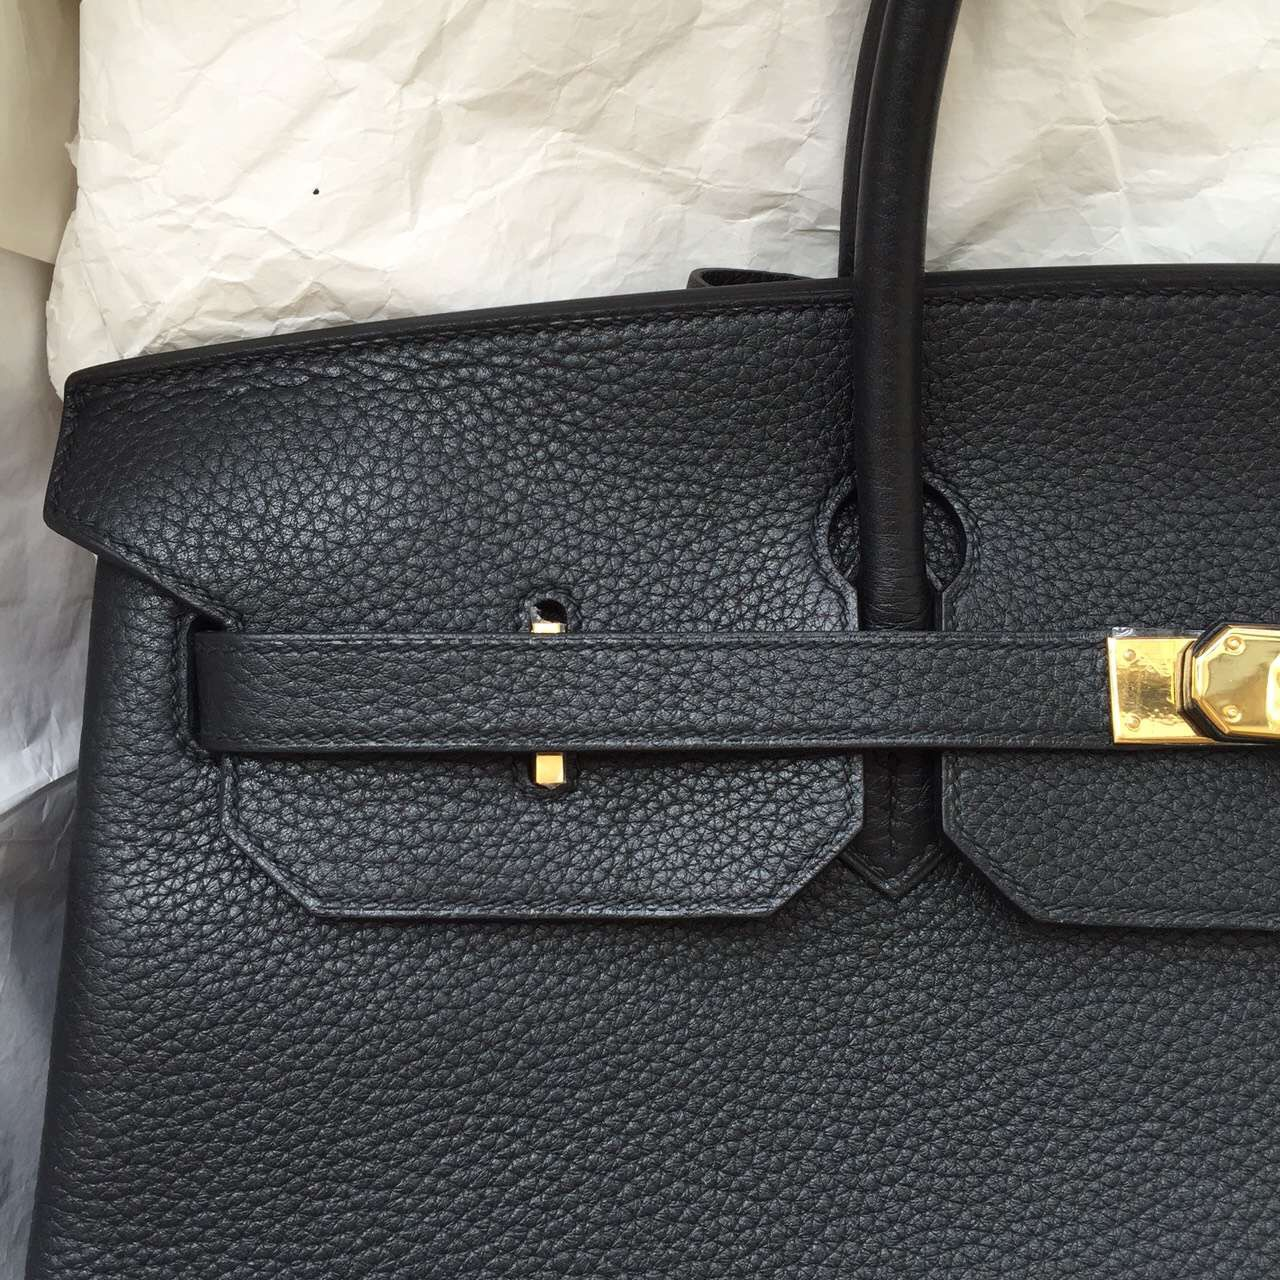 Hermes Birkin 40 black for sale at best price